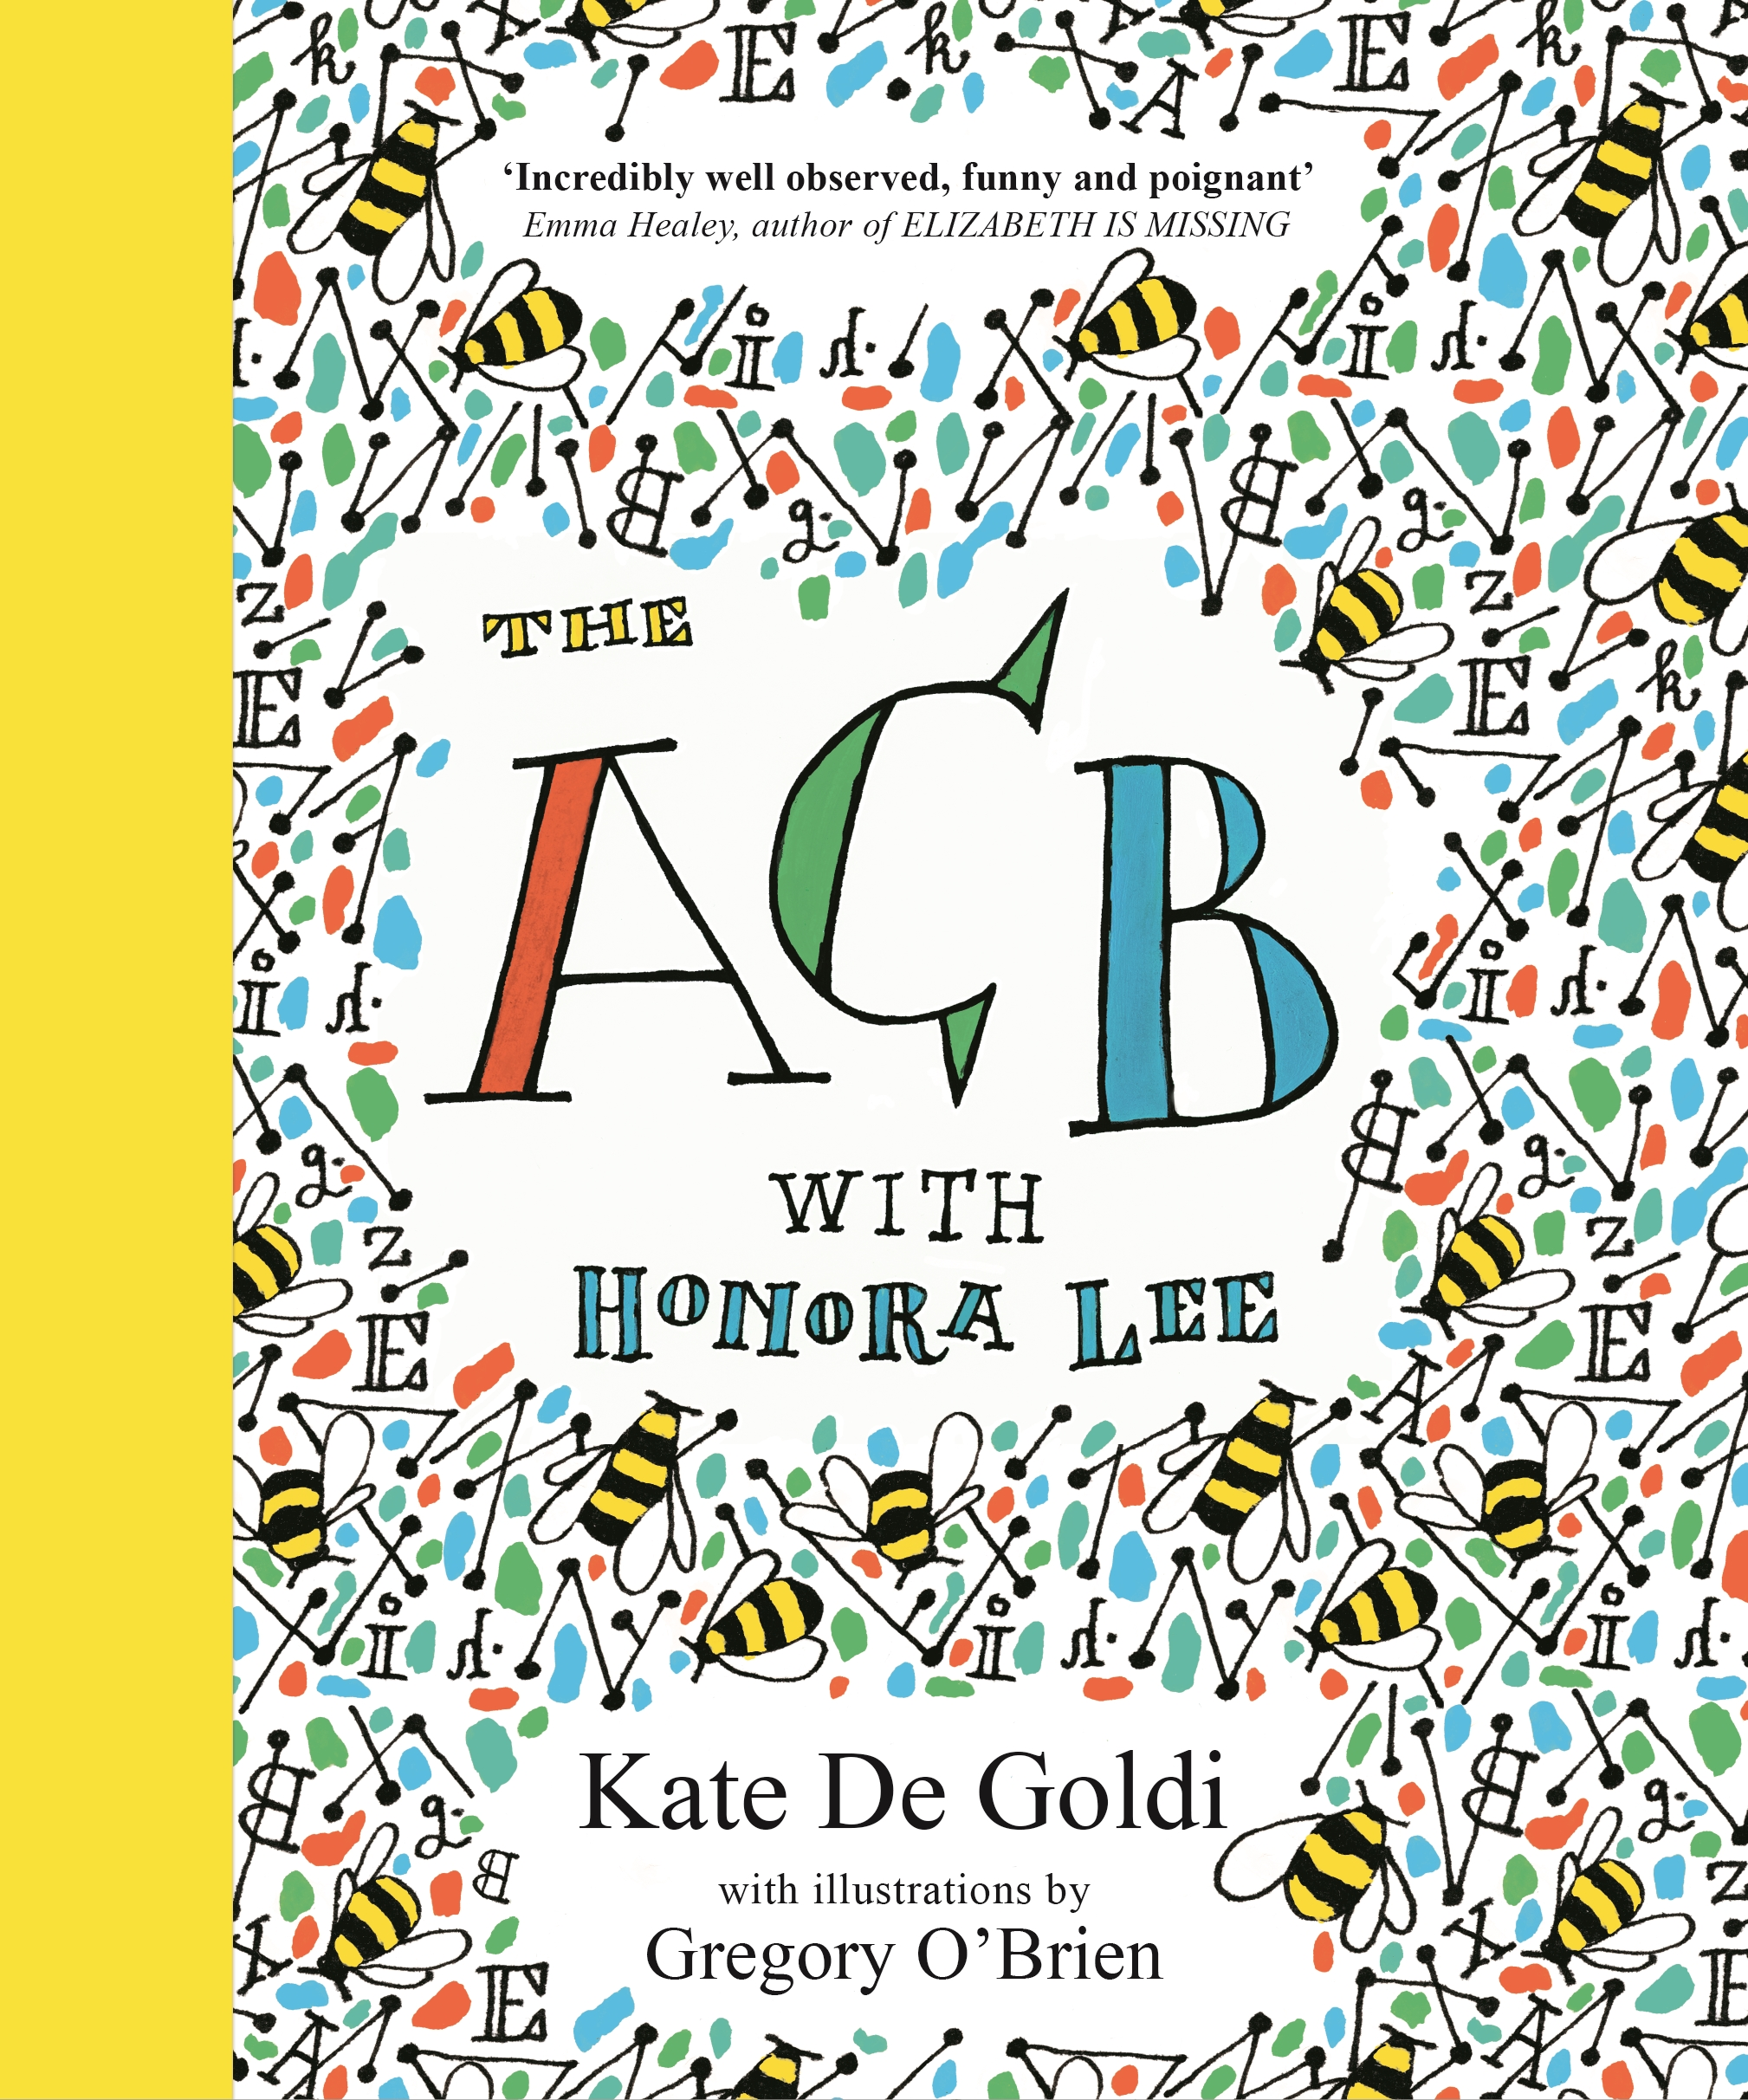 The ACB with Honora Lee by Kate De Goldi